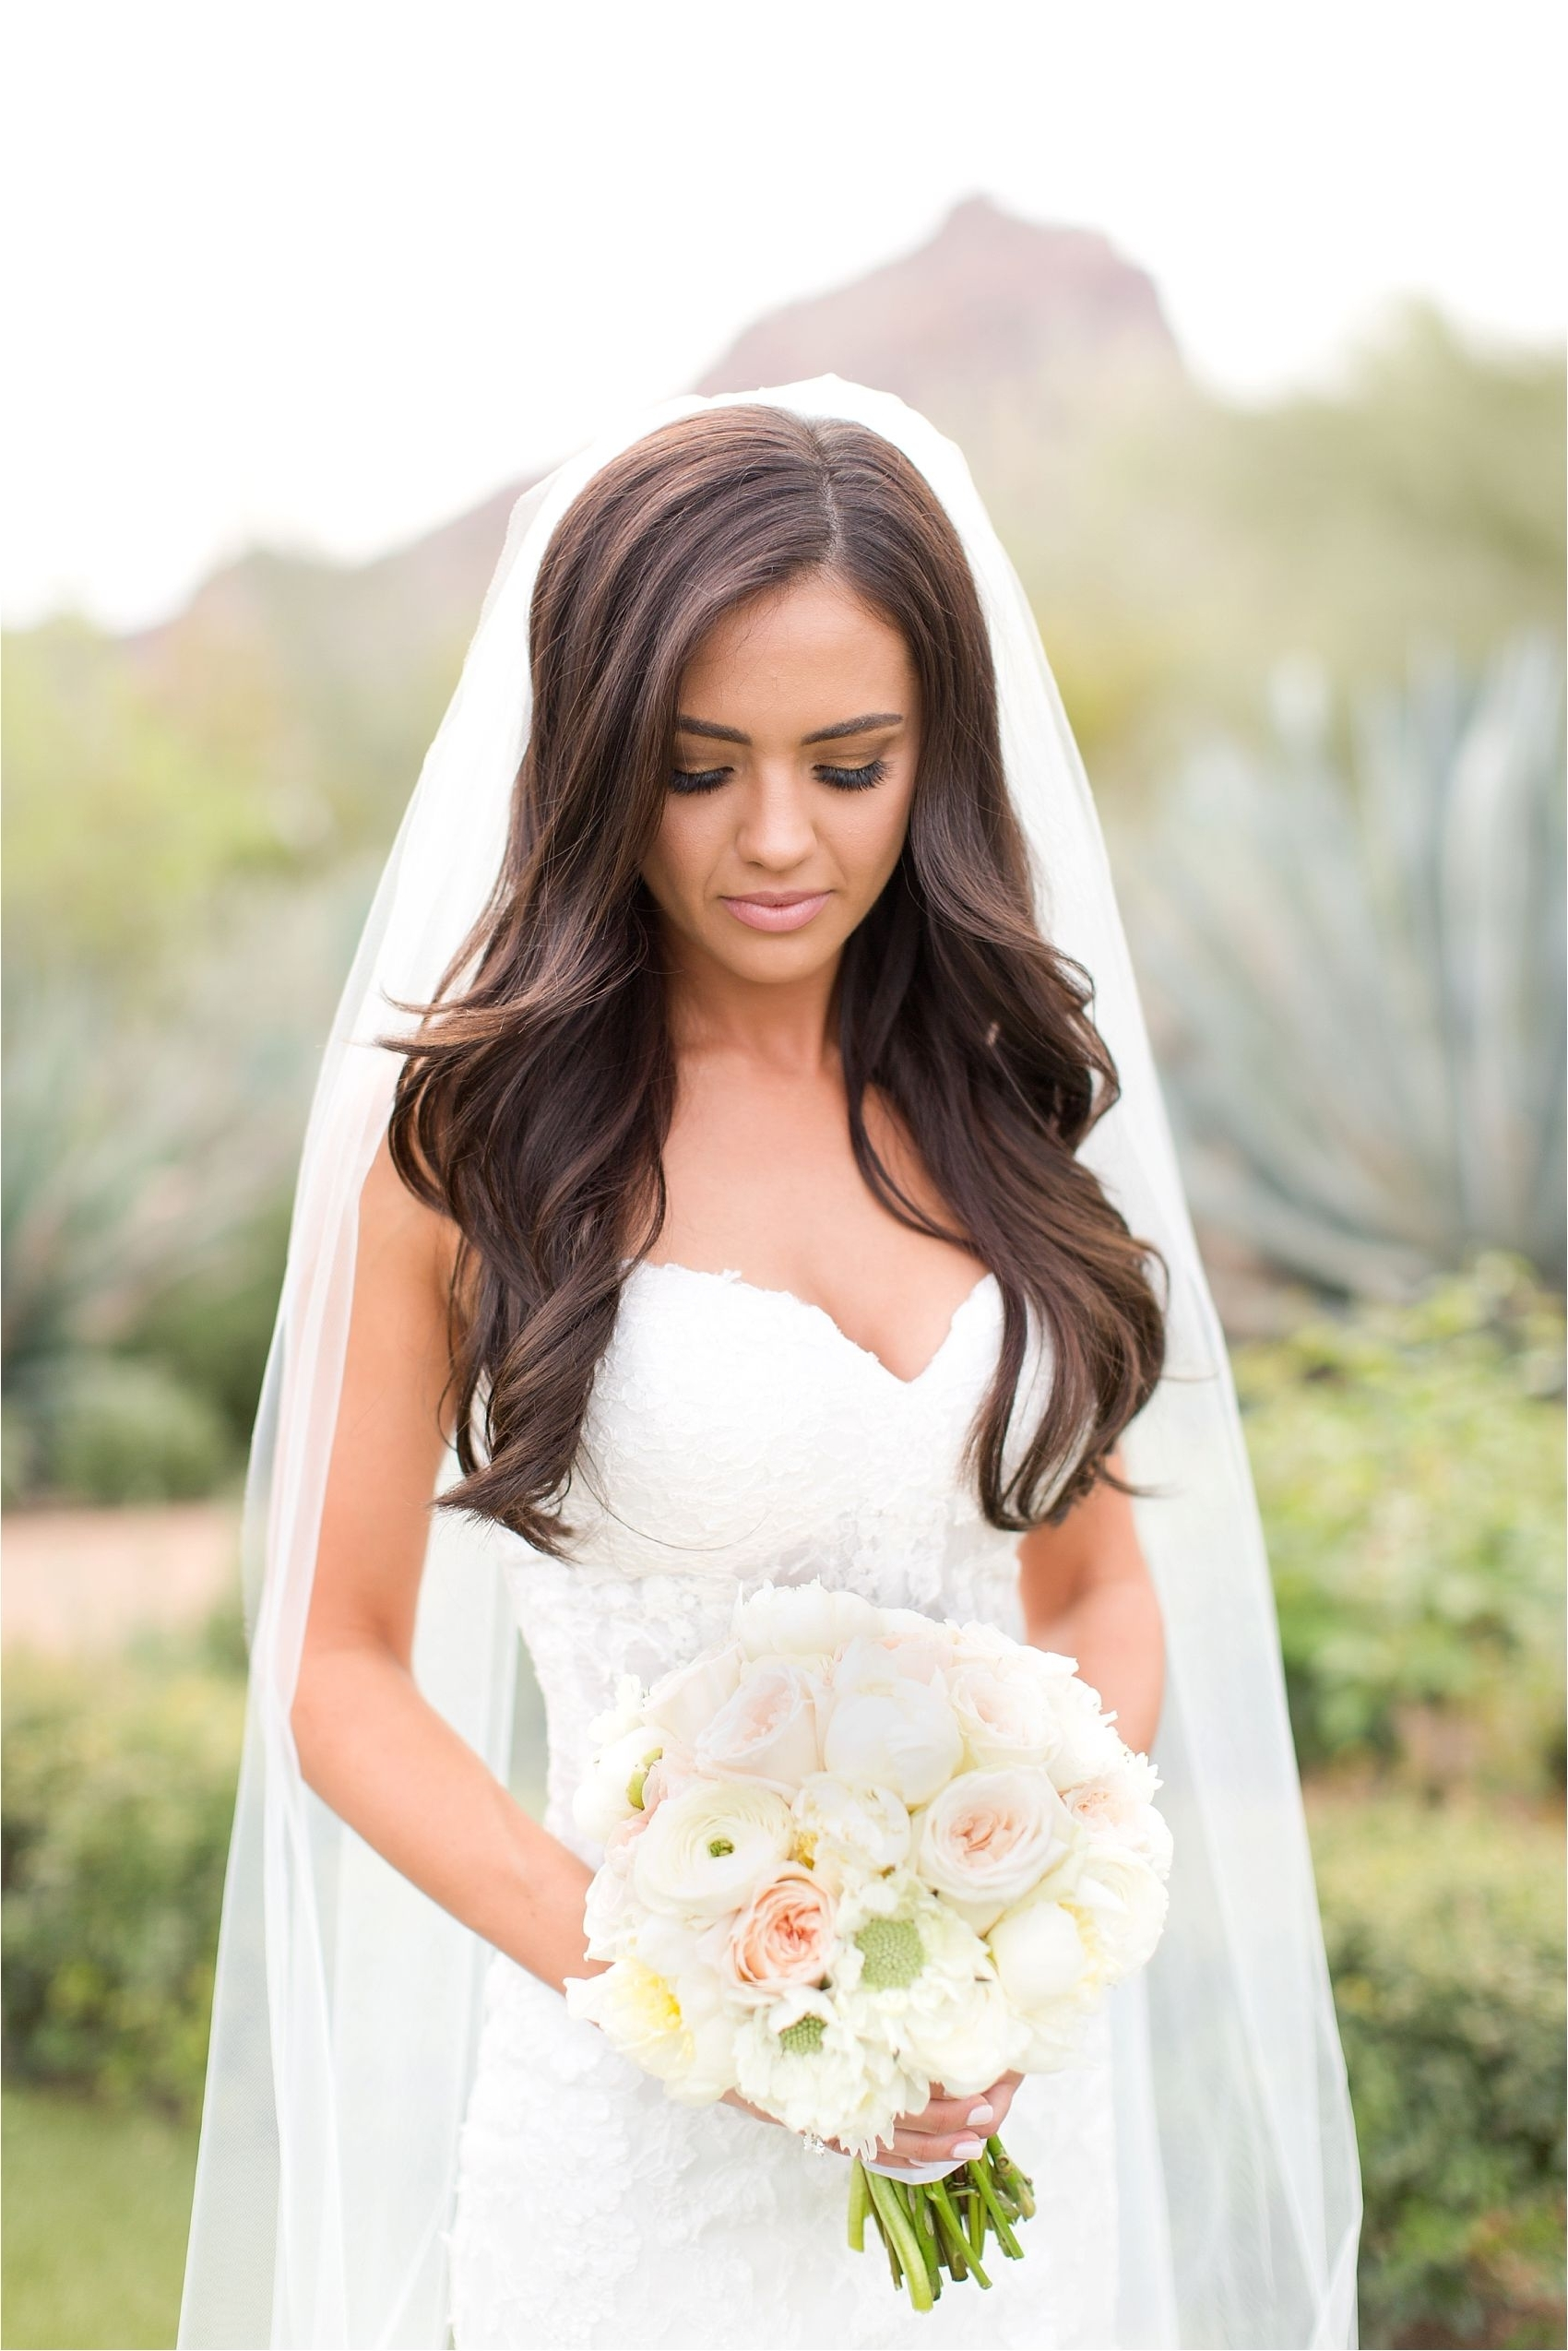 Wedding Hair : New Wedding Hairstyles With Veil Long Hair A Wedding Within Best And Newest Wedding Hairstyles For Long Straight Hair With Veil (View 13 of 15)